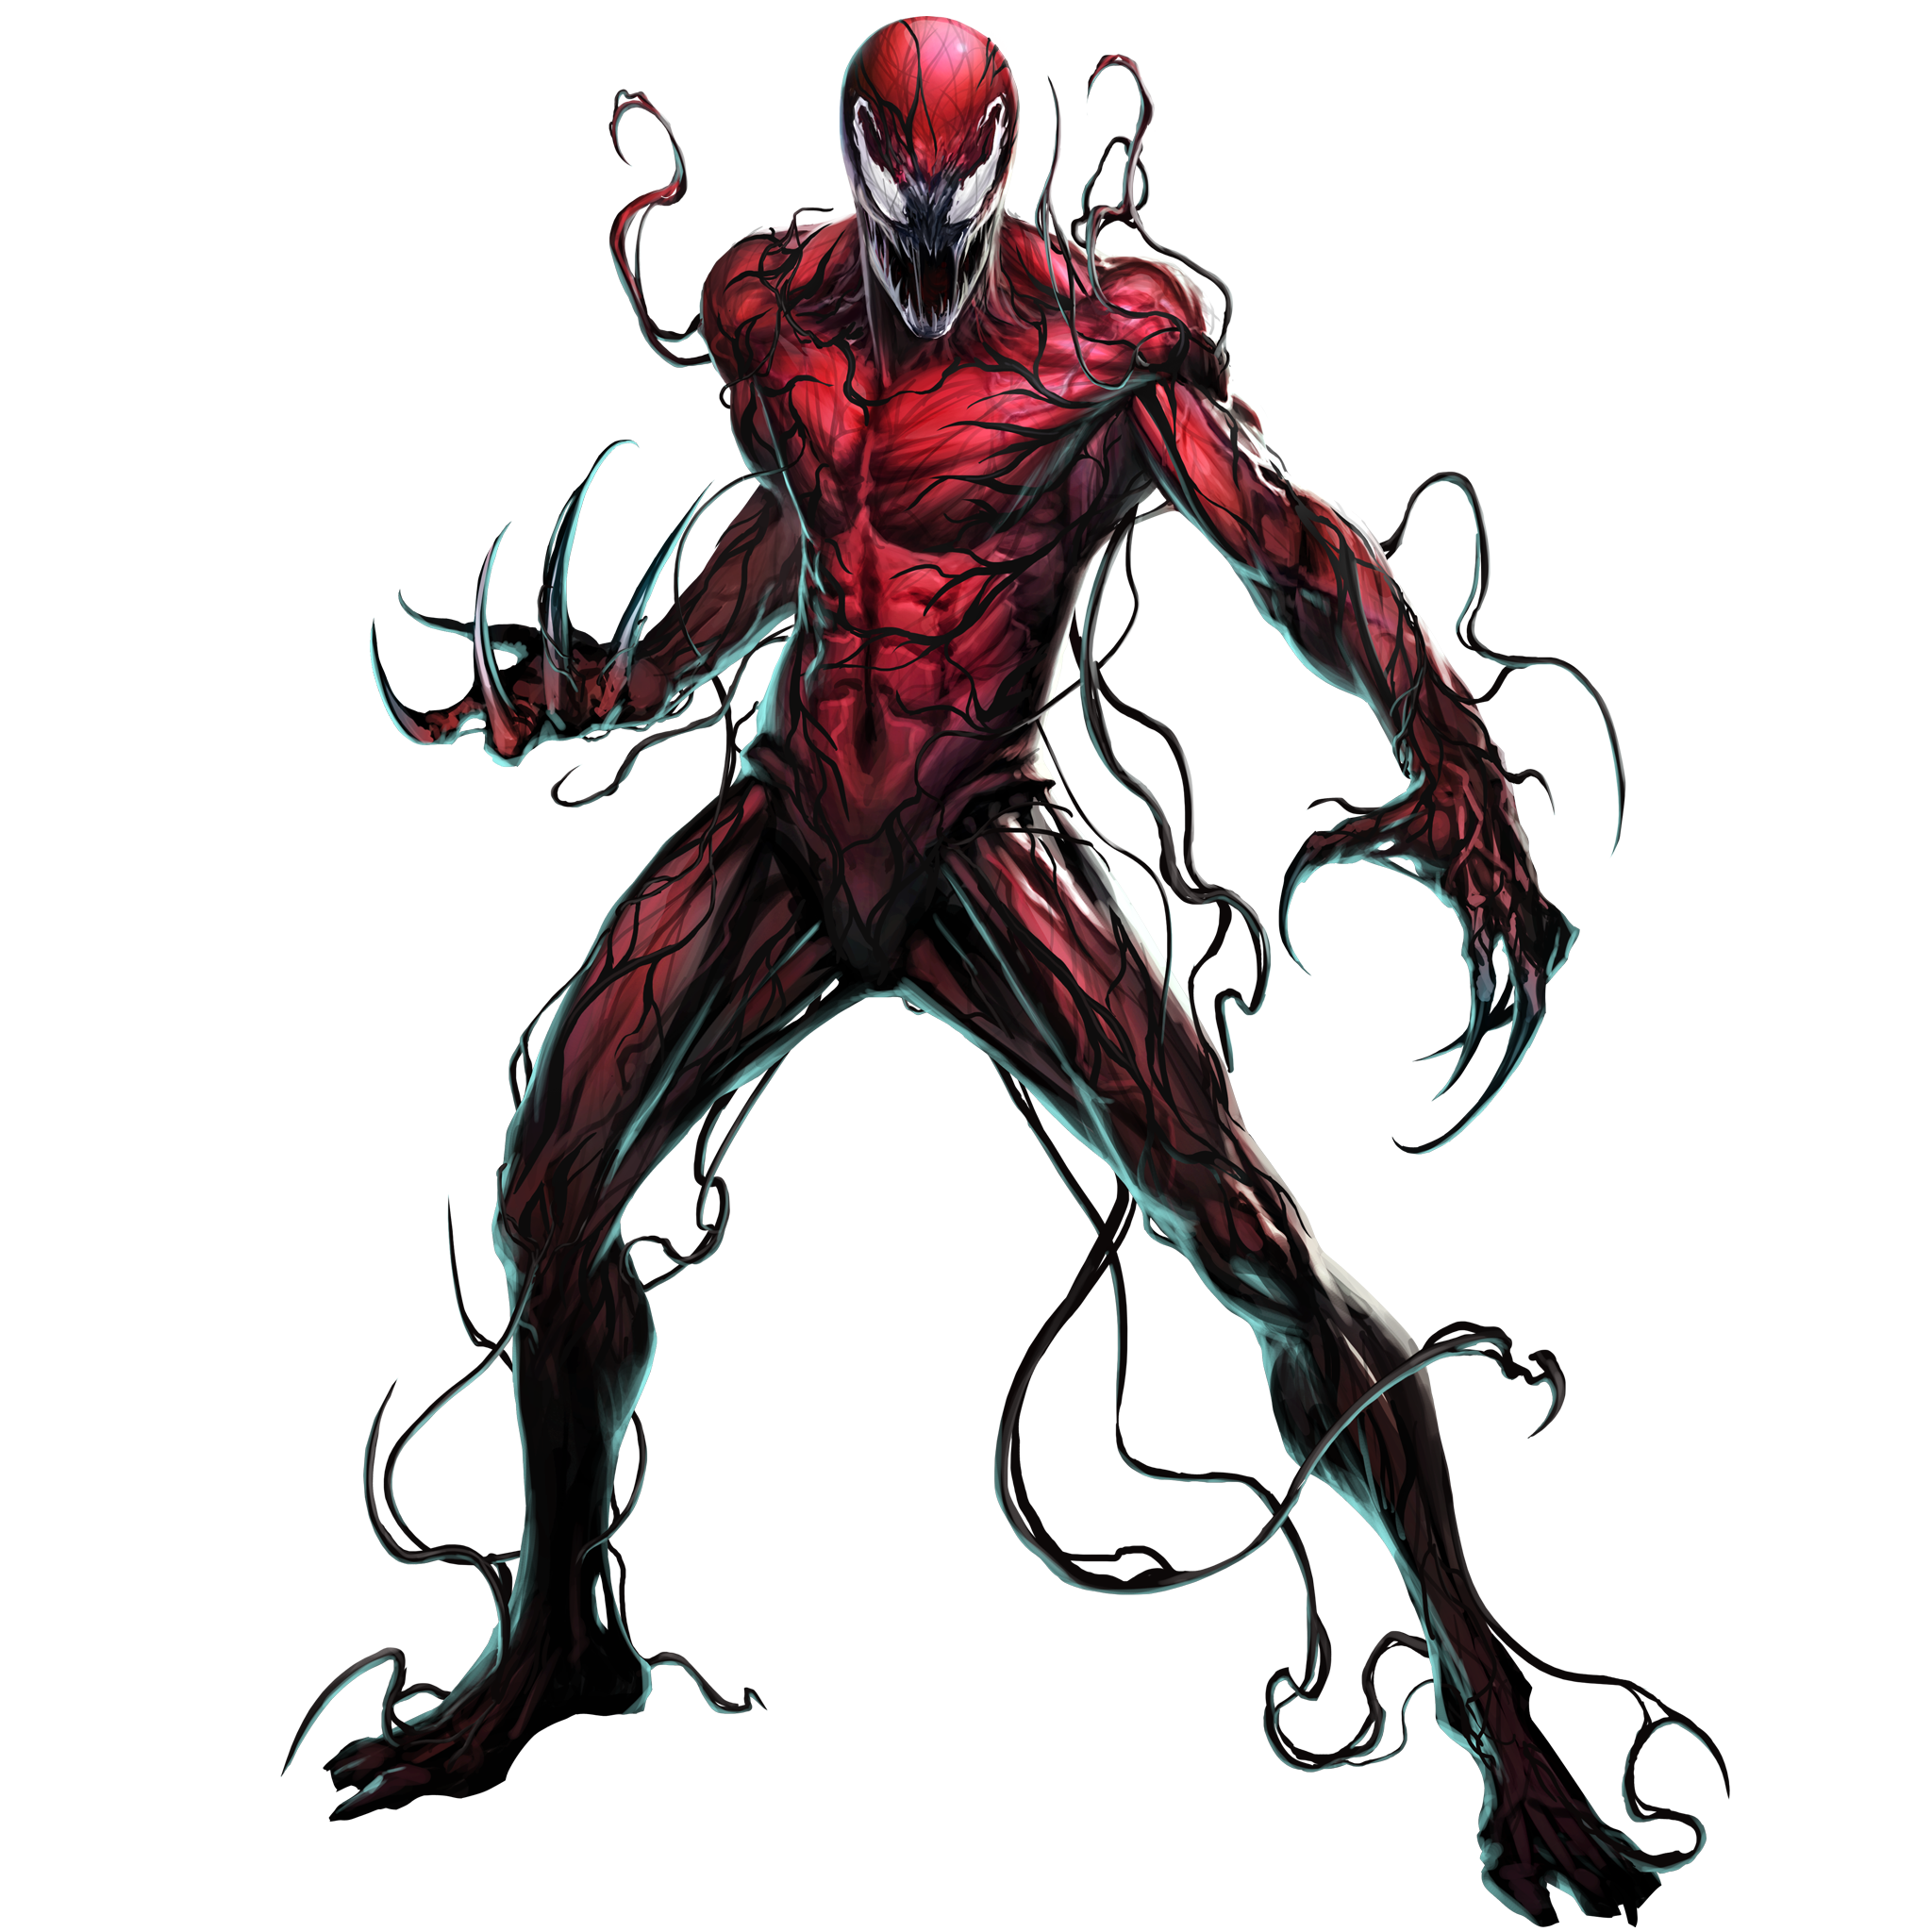 Venom transparent png. Carnage background mart